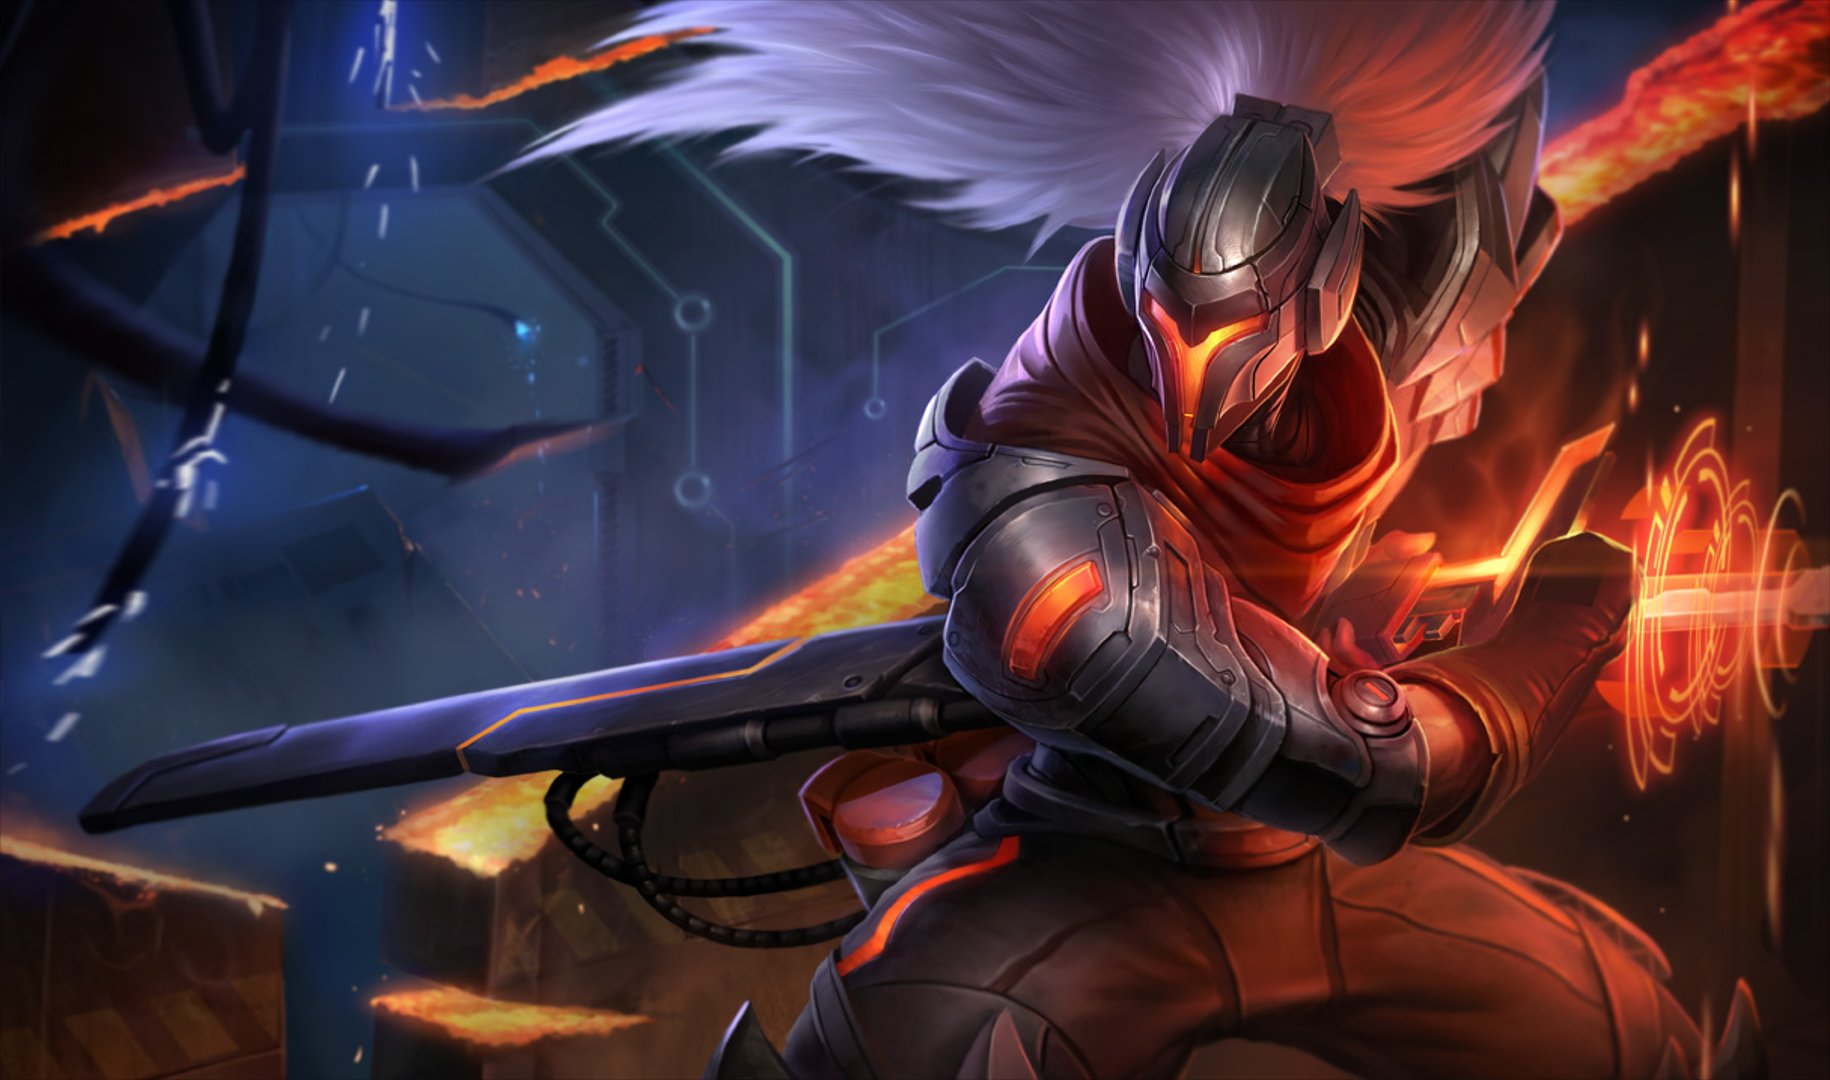 Yasuo Project Skin wallpaper 1830x1080 947827 WallpaperUP 1830x1080